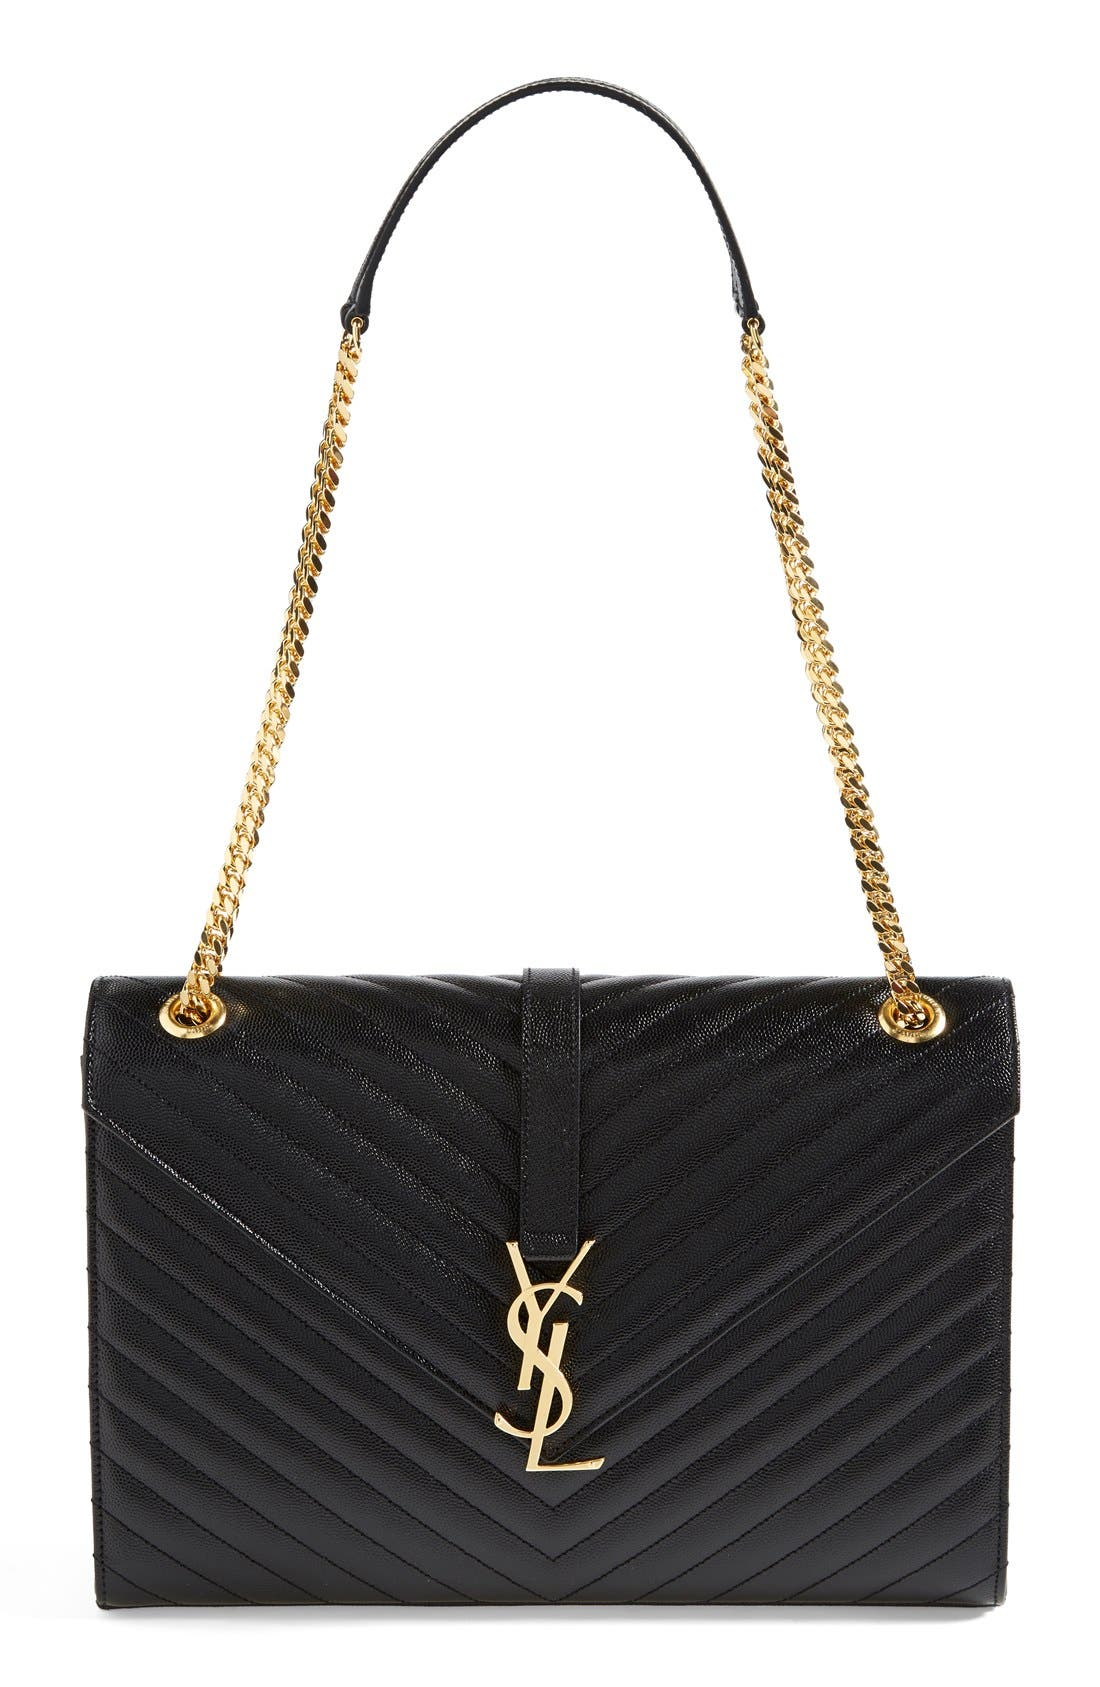 Alternate Image 1 Selected - Saint Laurent 'Monogram' Leather Shoulder Bag